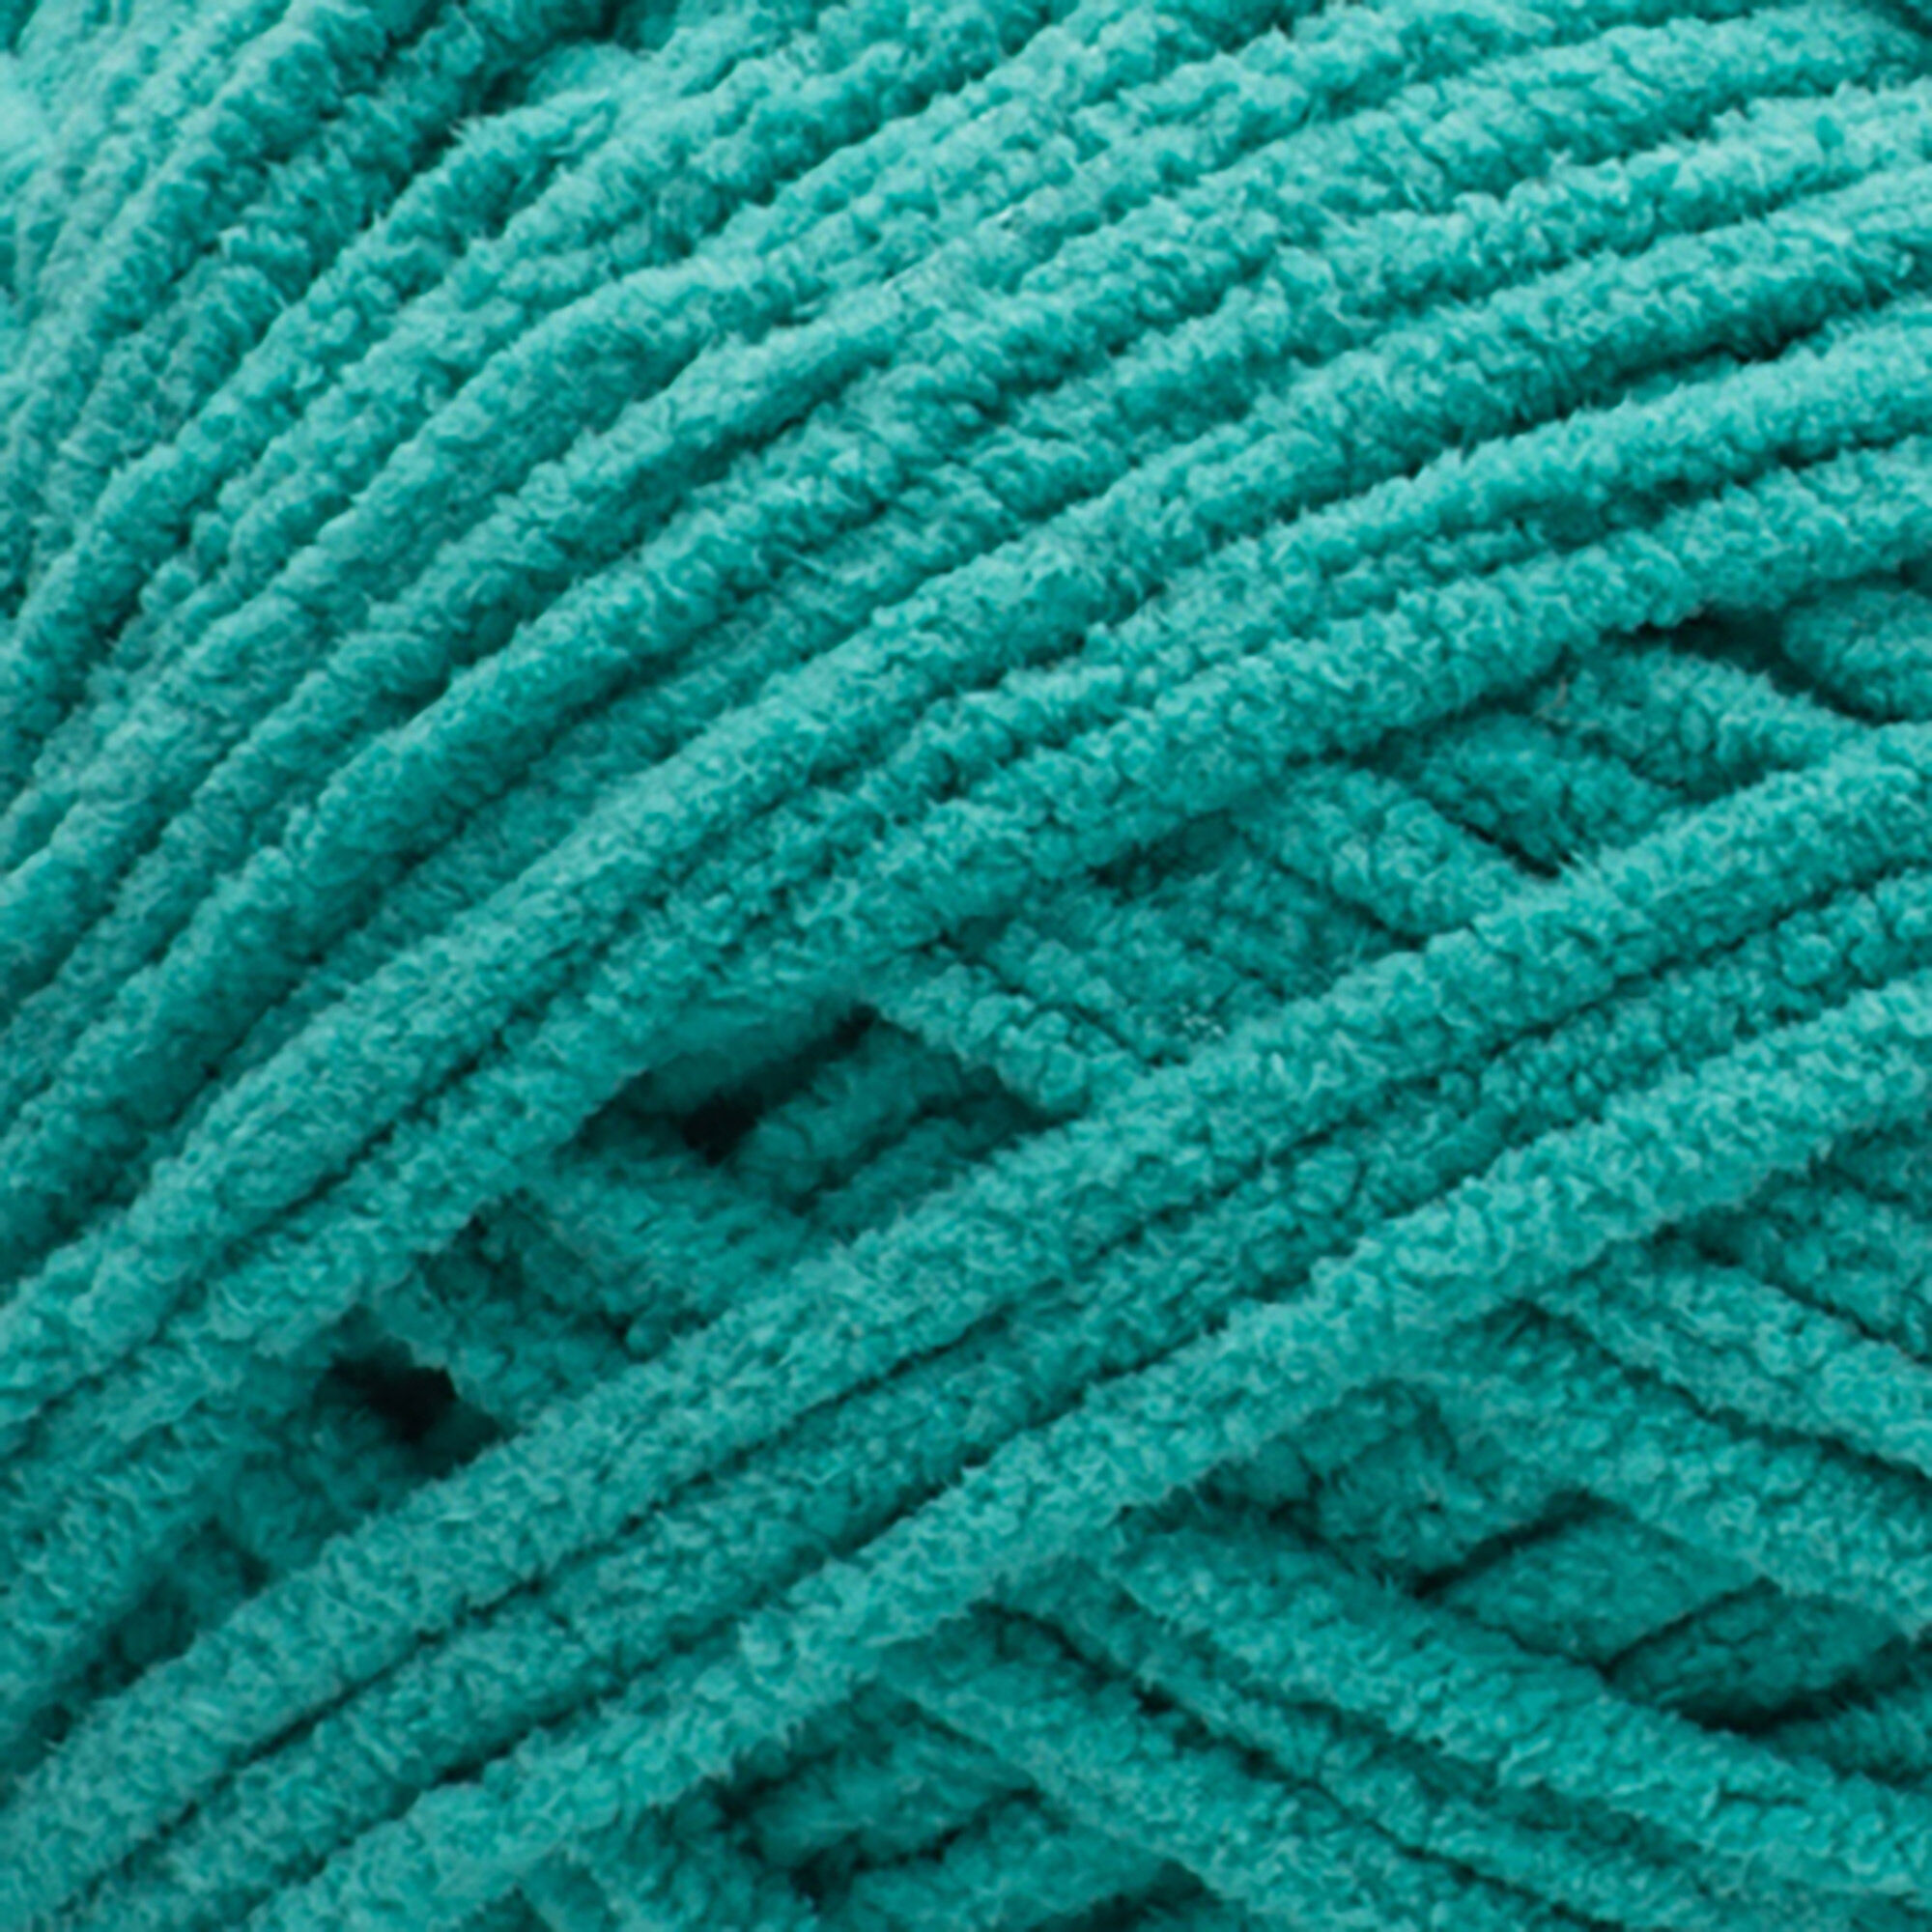 Bernat Blanket Pet Yarn, Teal | Yarnspirations